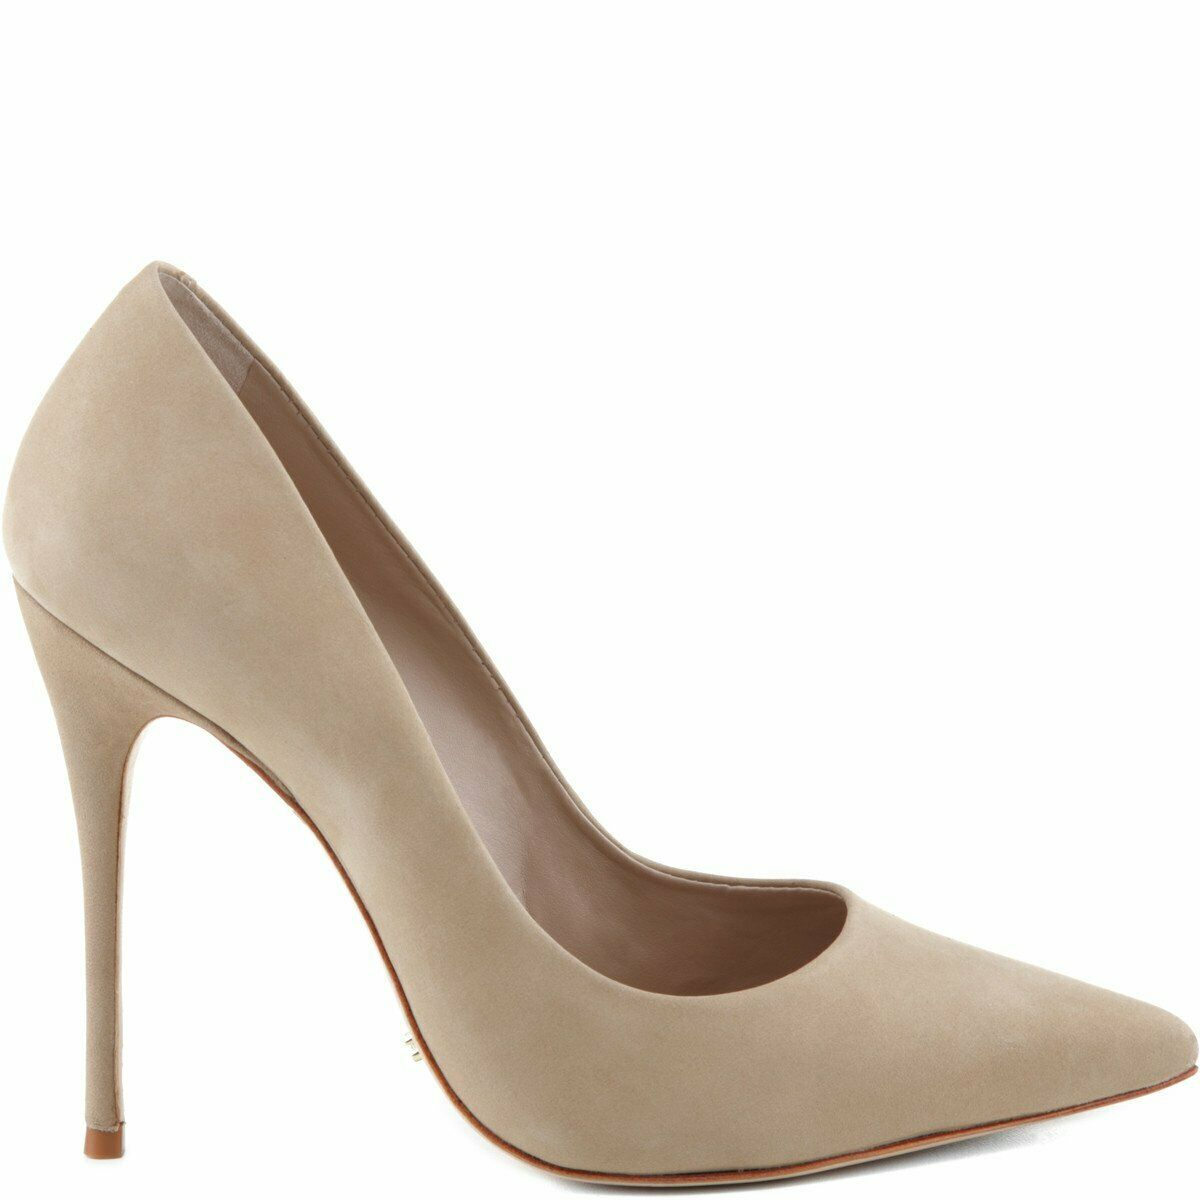 bellissima SCHUTZ donna Caiolea, Brush Sand Nude Nude Nude Suede Pointed Toe Dress Pumps  consegna lampo